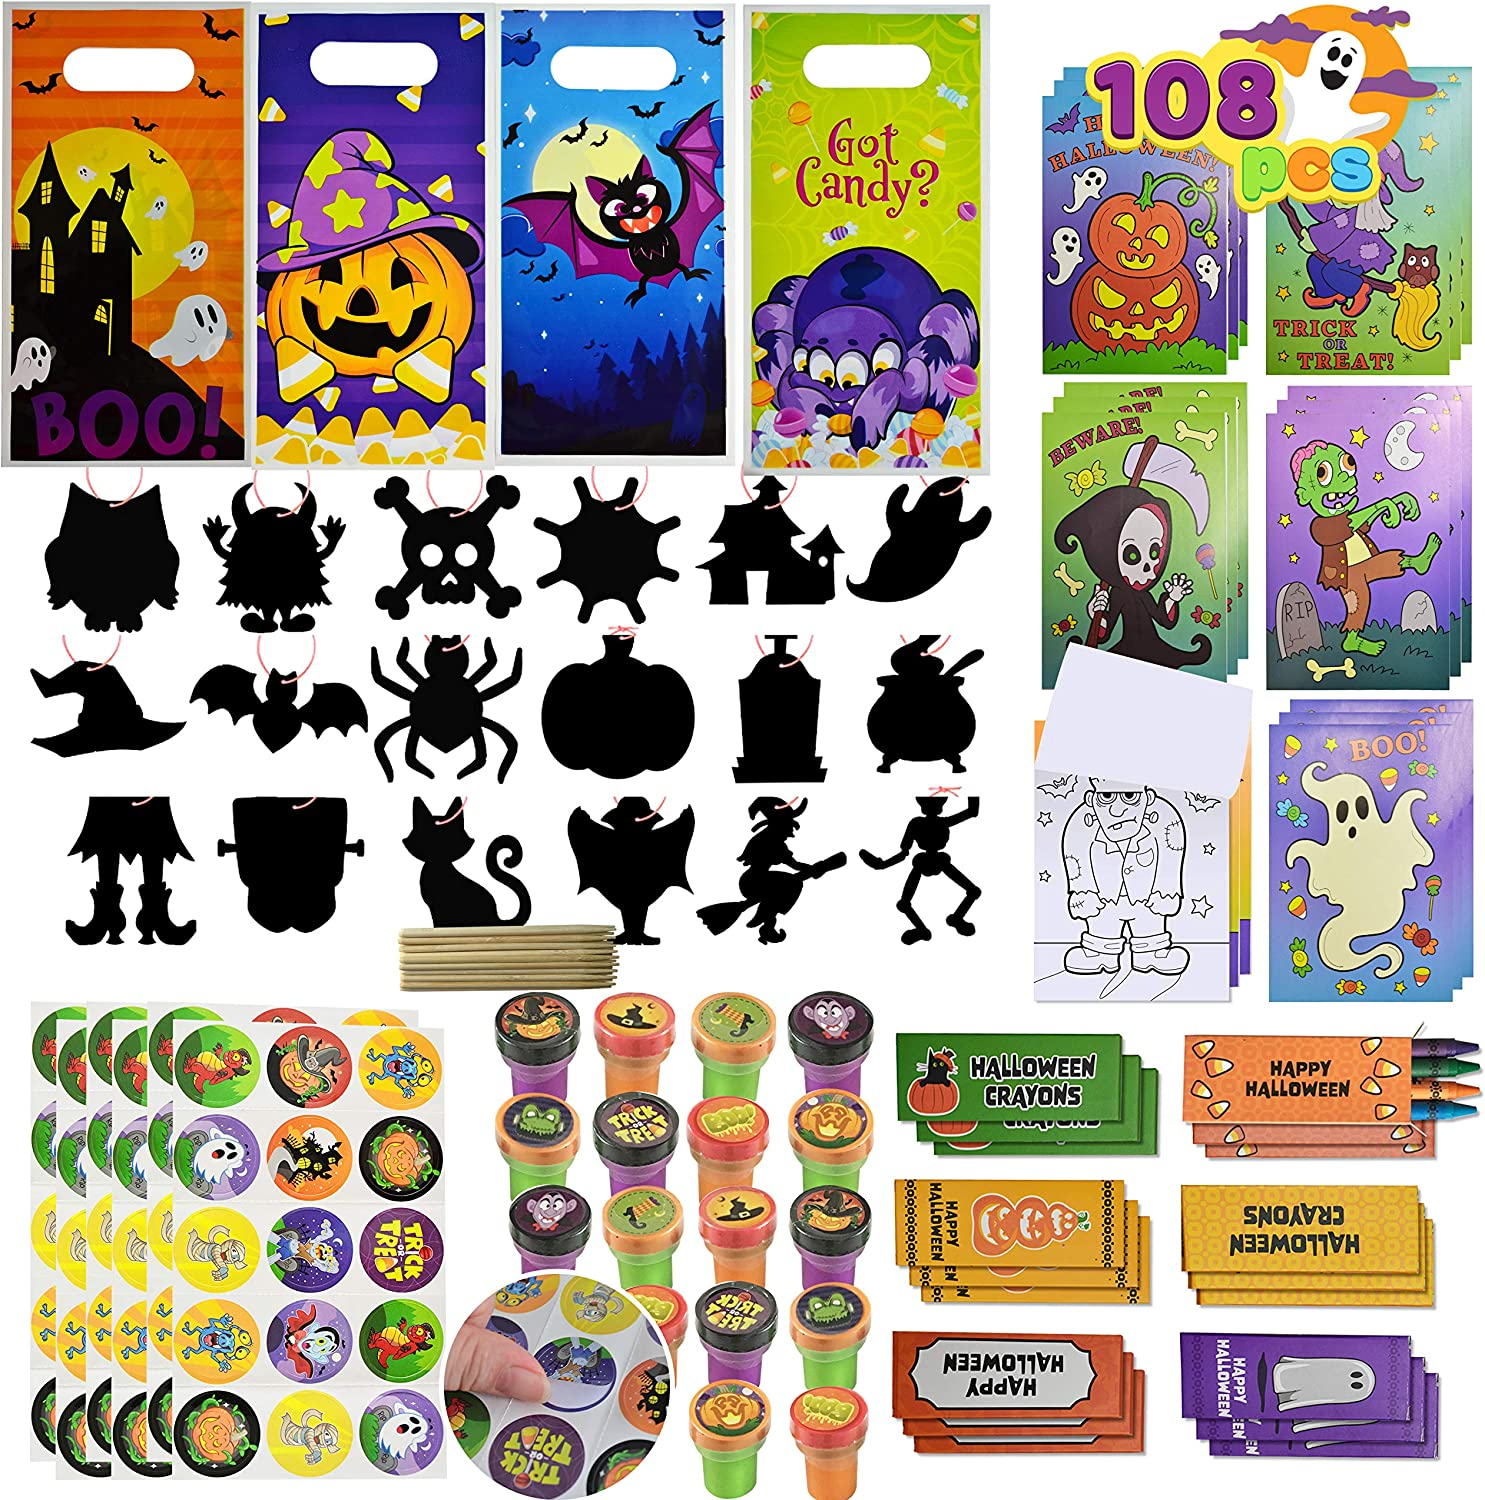 JOYIN 108 Pieces 18 Pack Assorted Halloween Art and Craft Stationery Gift Sets Trick or Treat Party Favor Toy Including Halloween Bag, Scratch Cards, Coloring Books, Stickers, Stamps, Crayons